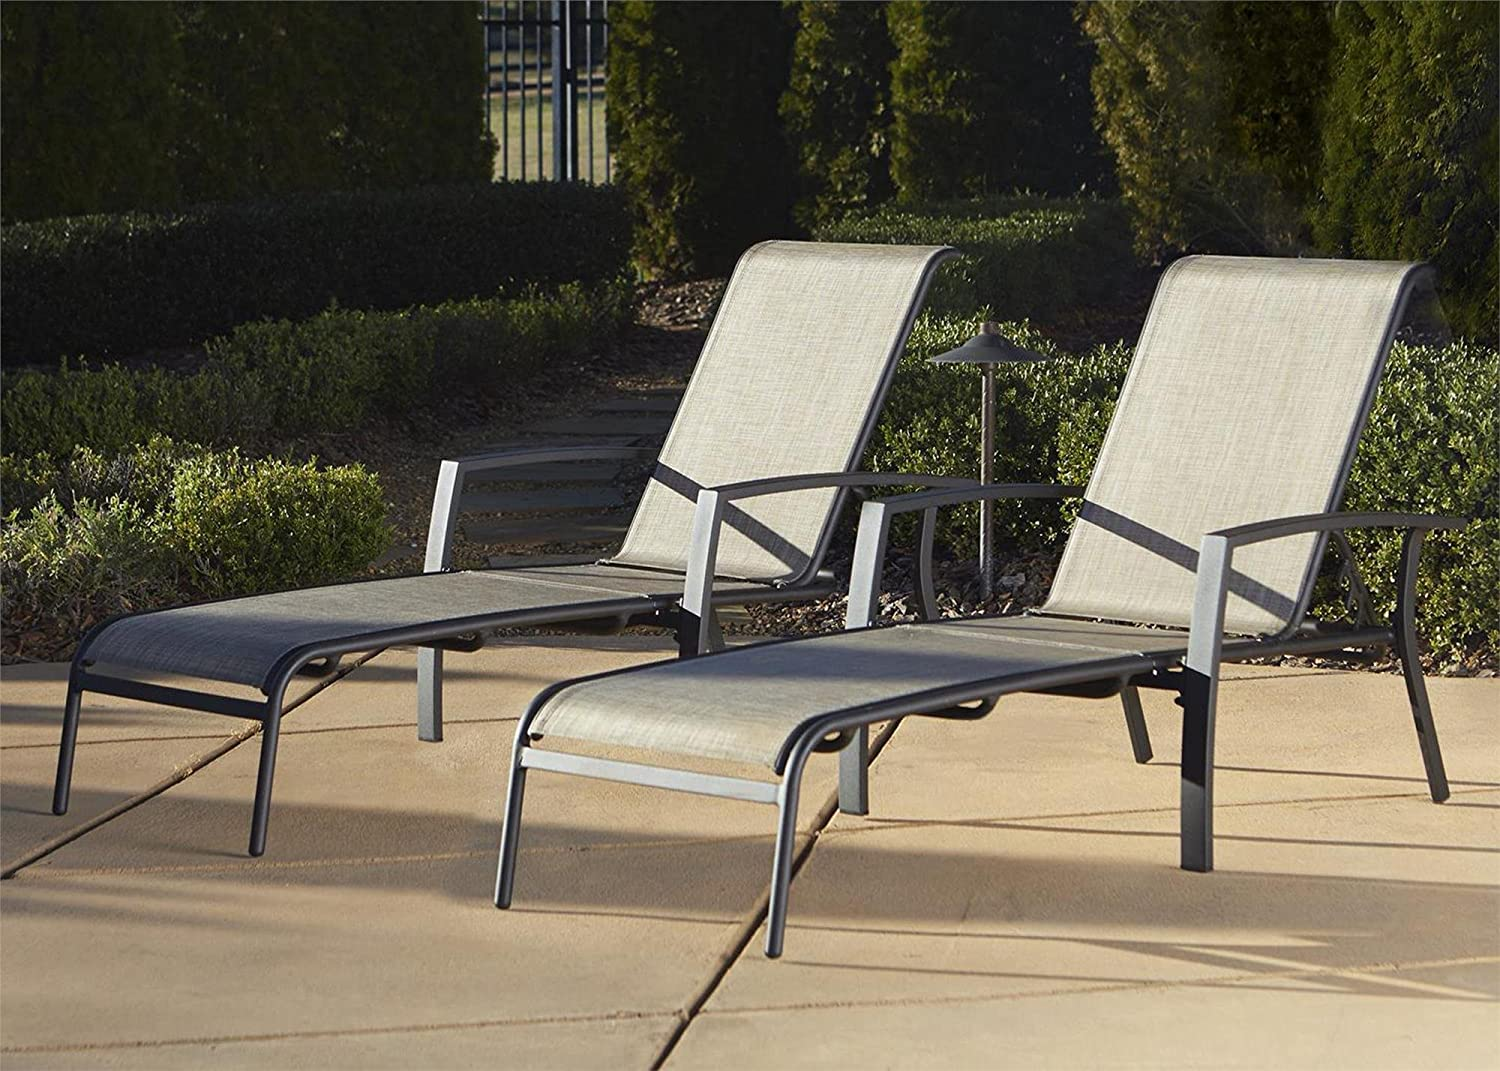 furniture n lounge lounges statesville chairs bay the padded b depot hampton home outdoors patio outdoor chaise